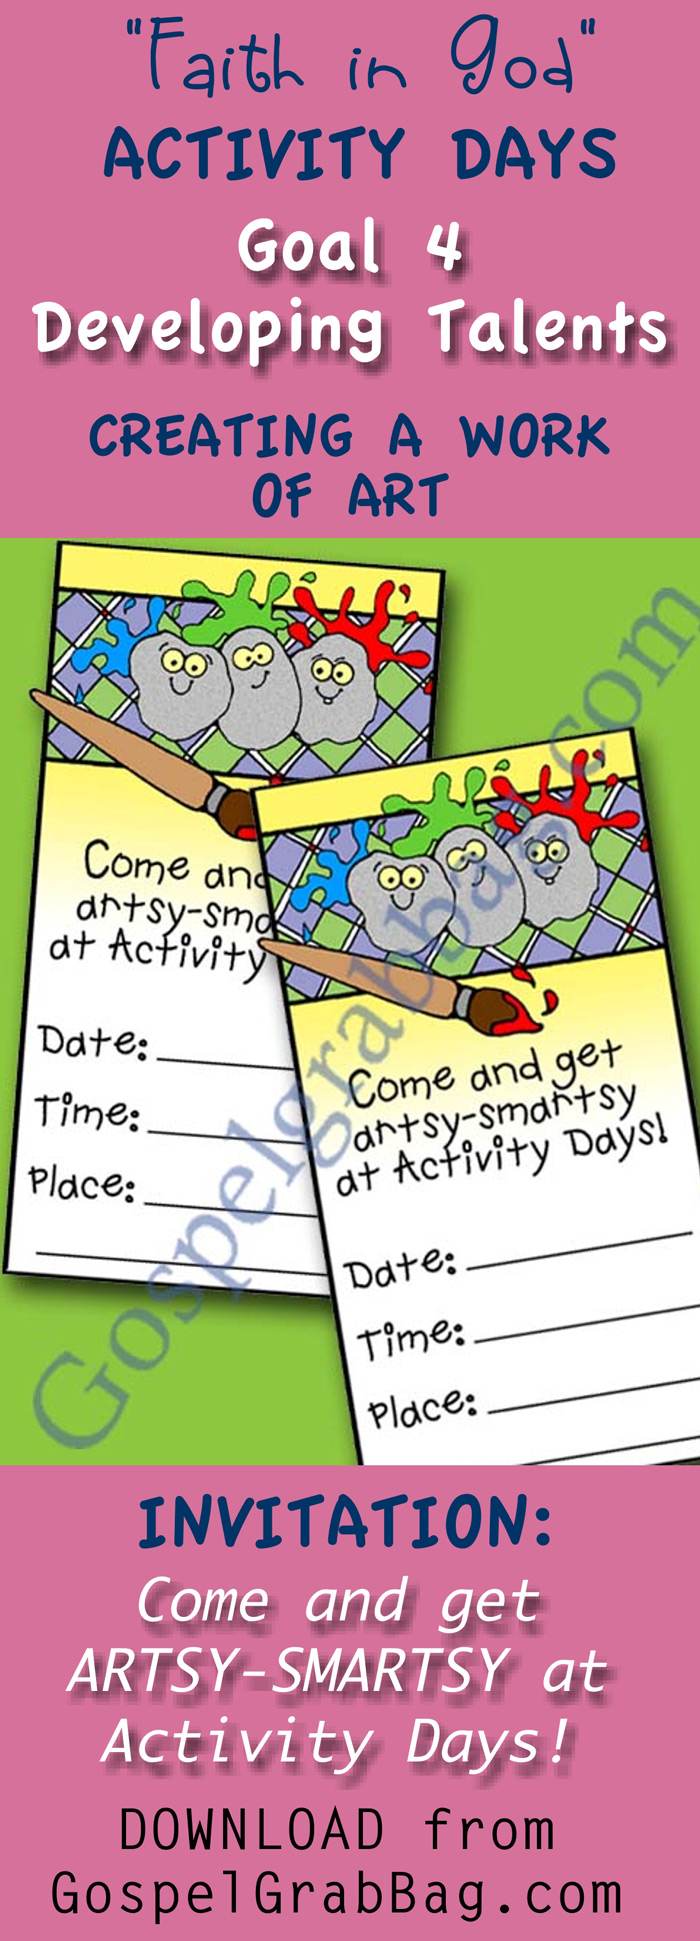 INVITATION FOR ACTIVITY DAYS ACTIVITY – Download activity to achieve Activity Days Developing Talents Goal 4 – GOAL: Make an item from wood, metal, fabric, or other material, or draw, paint, or sculpt a piece of art.  Display your finished work for others to see. ACTIVITY: (1) Nature Prints (calendar, card, and picture frame), (2) Rock Fun – Tic-tac-Toe game and rock creations to DOWNLOAD from GospelGrabBag.com